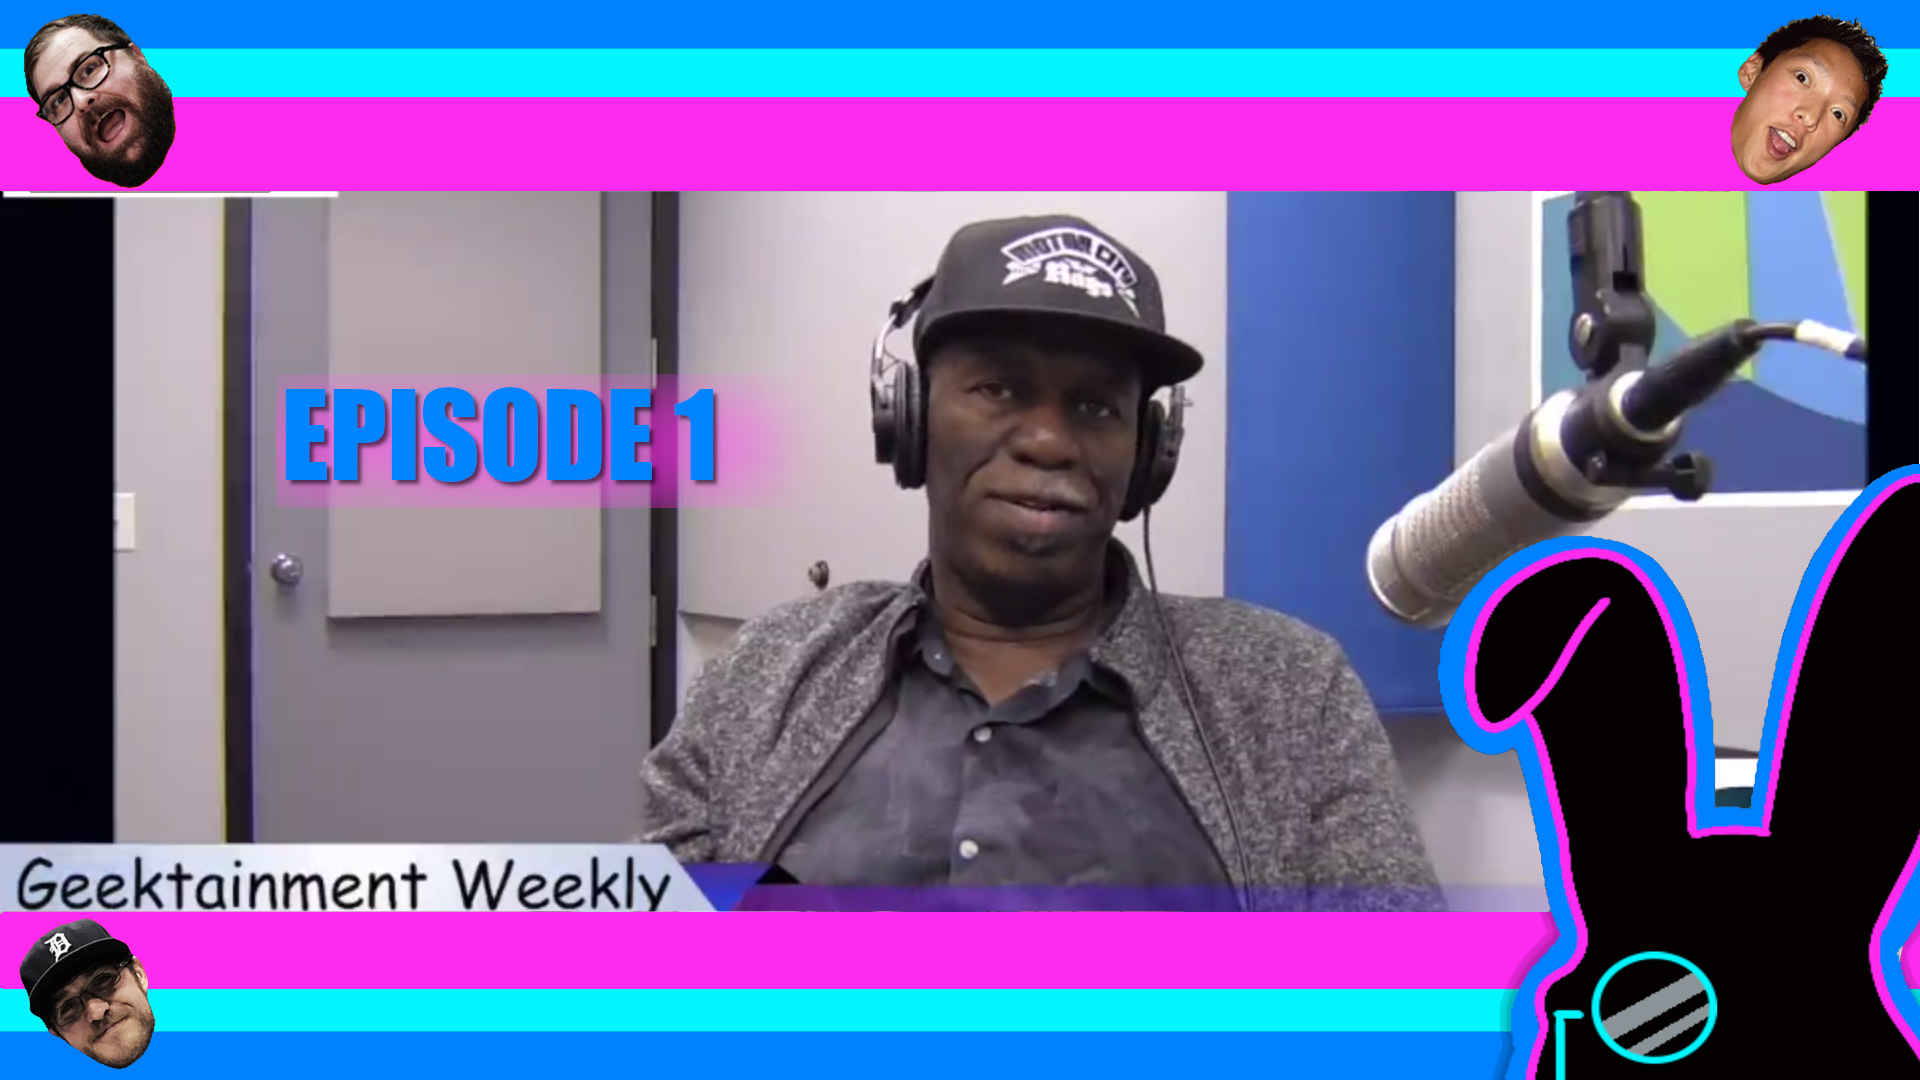 Geektainment Weekly - Episode 1